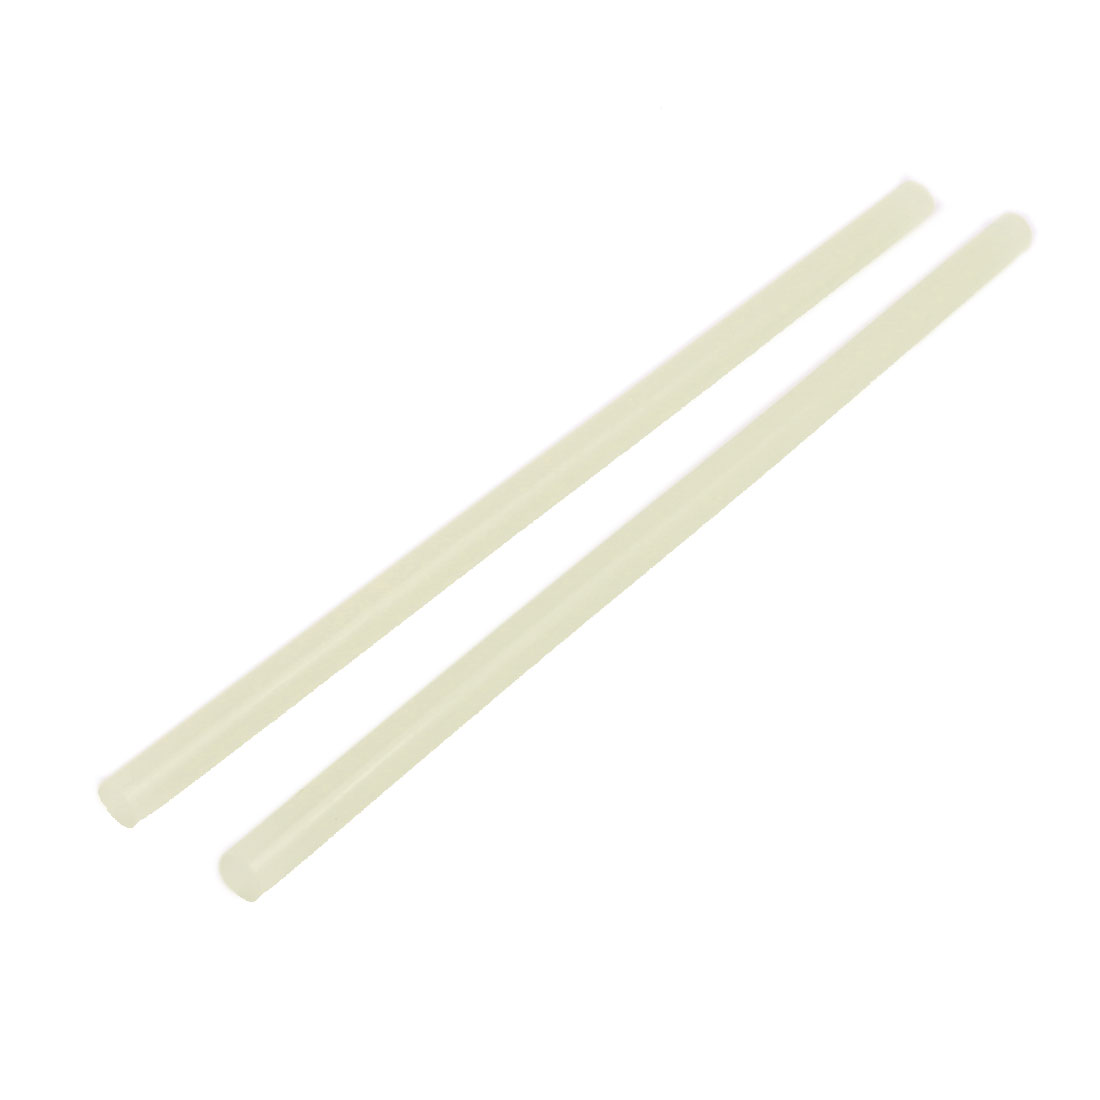 2 Pcs 11mm x 285mm Hot Melt Glue Adhesive Stick Yellow for Electric Tool Heating Gun